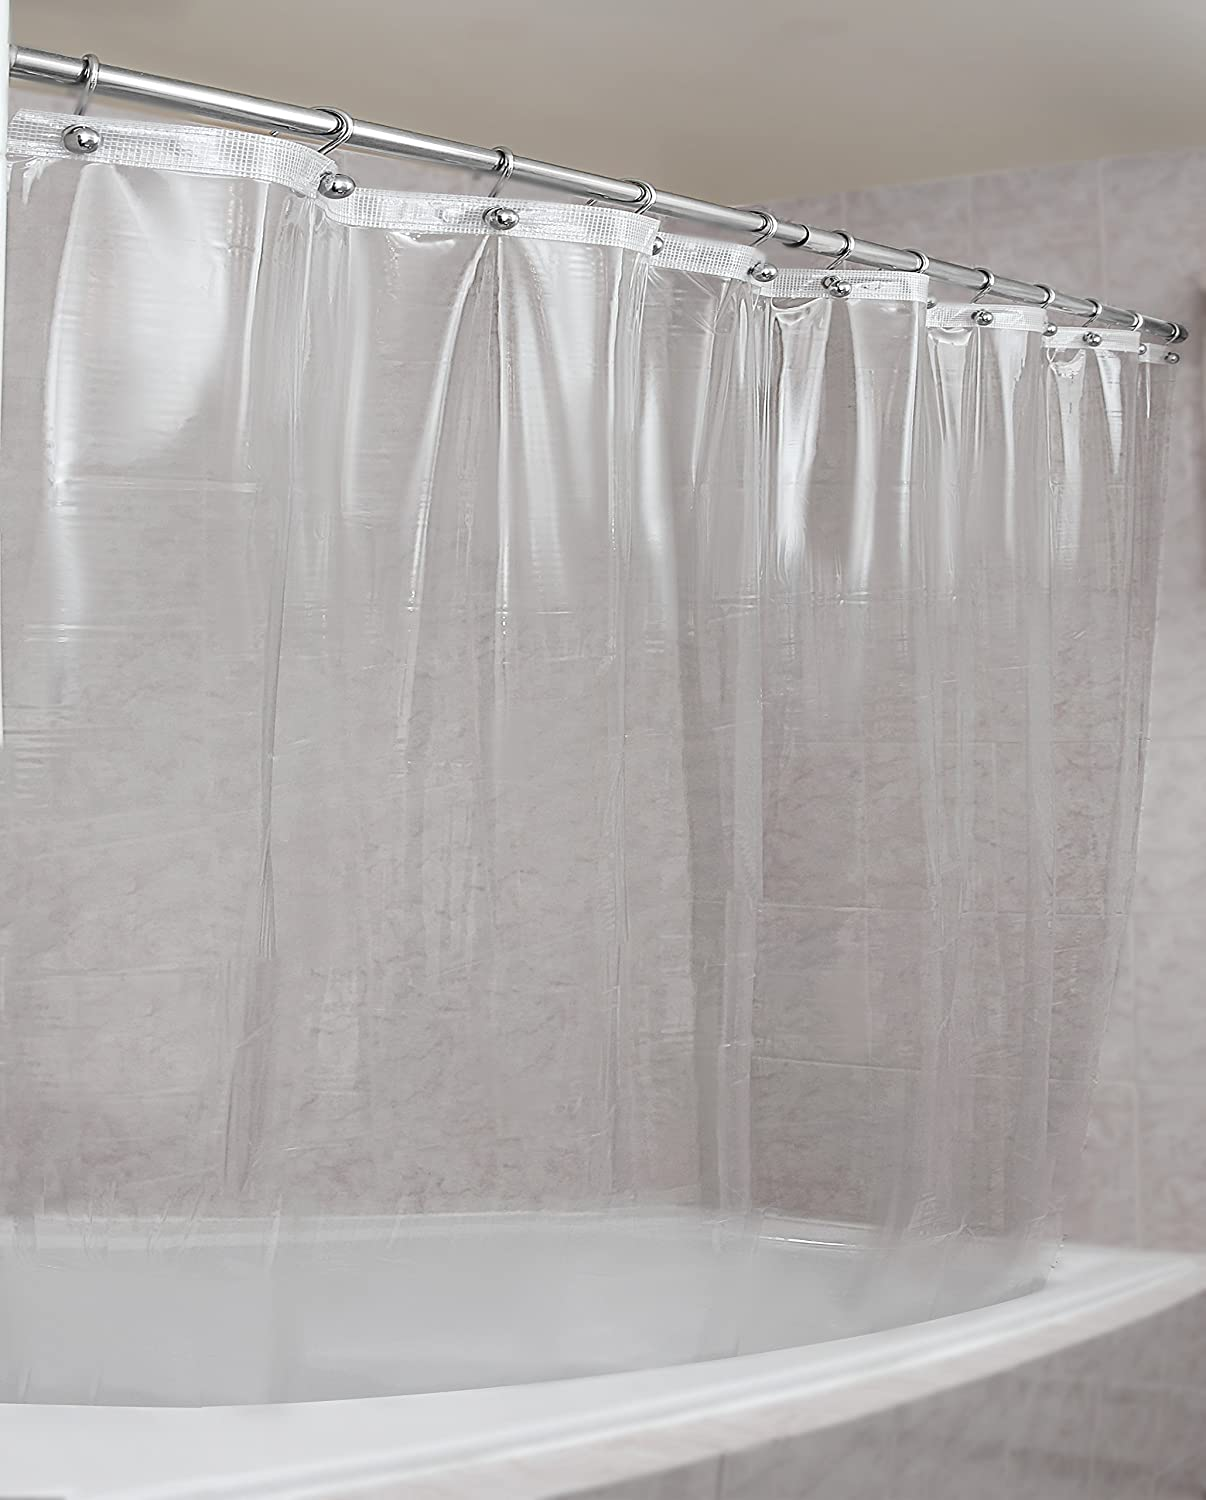 Amazon Epica Strongest Mildew Resistant Shower Curtain Liner On The Market 100 Anti Bacterial 10 Gauge Heavy Duty Waterproof 72x72 Inches Clear